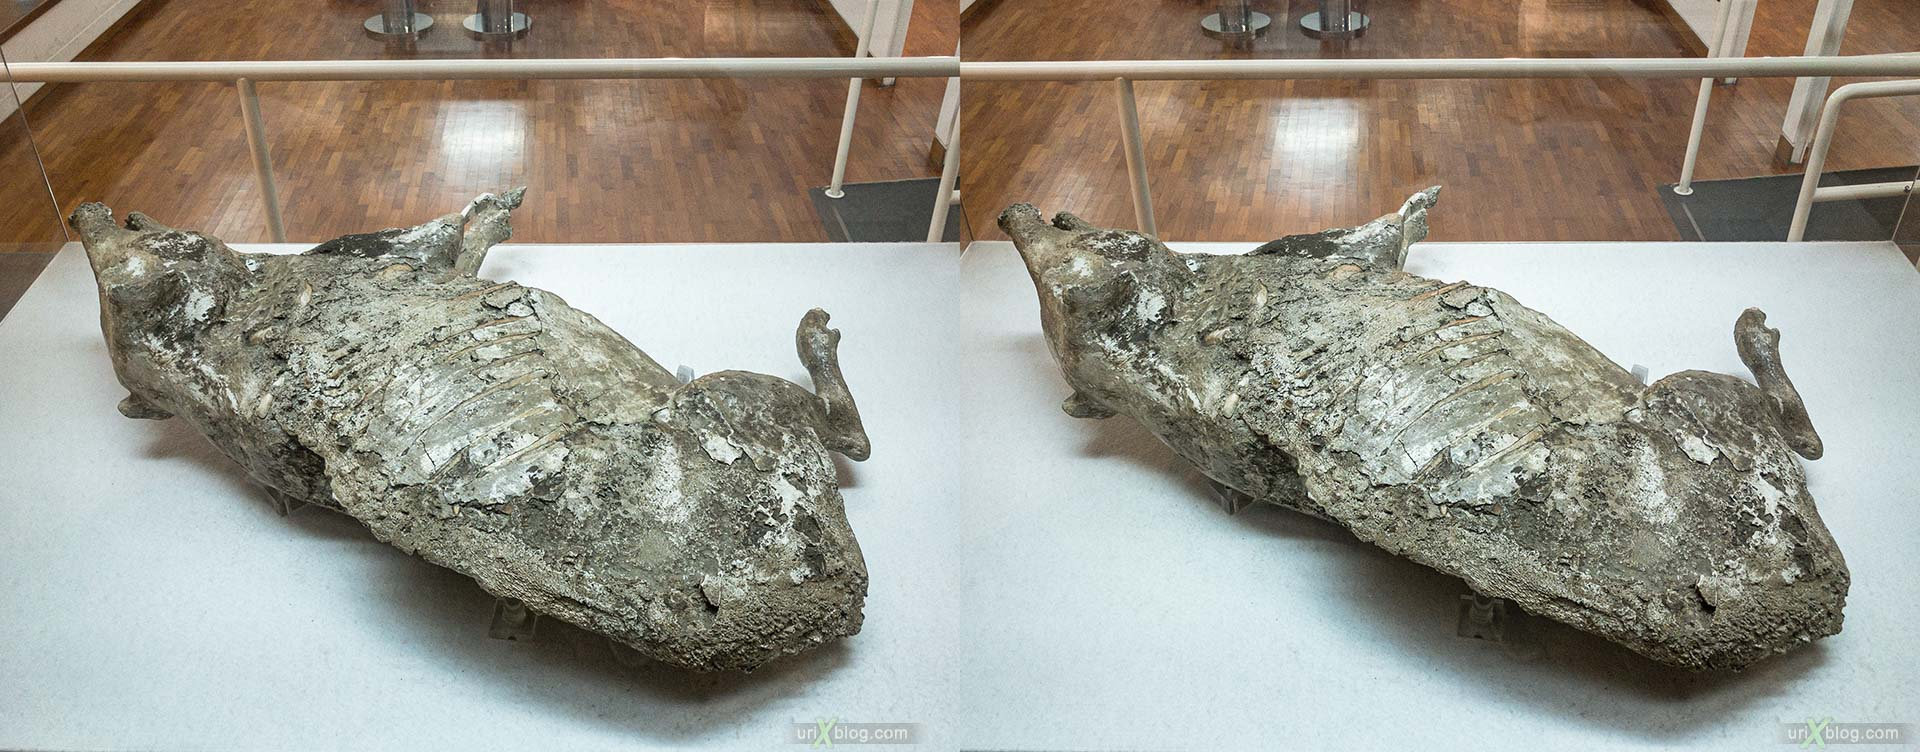 pig, Museum, excavations, villa Regina, Boscoreale, Pompei, Italy, 3D, stereo pair, cross-eyed, crossview, cross view stereo pair, stereoscopic